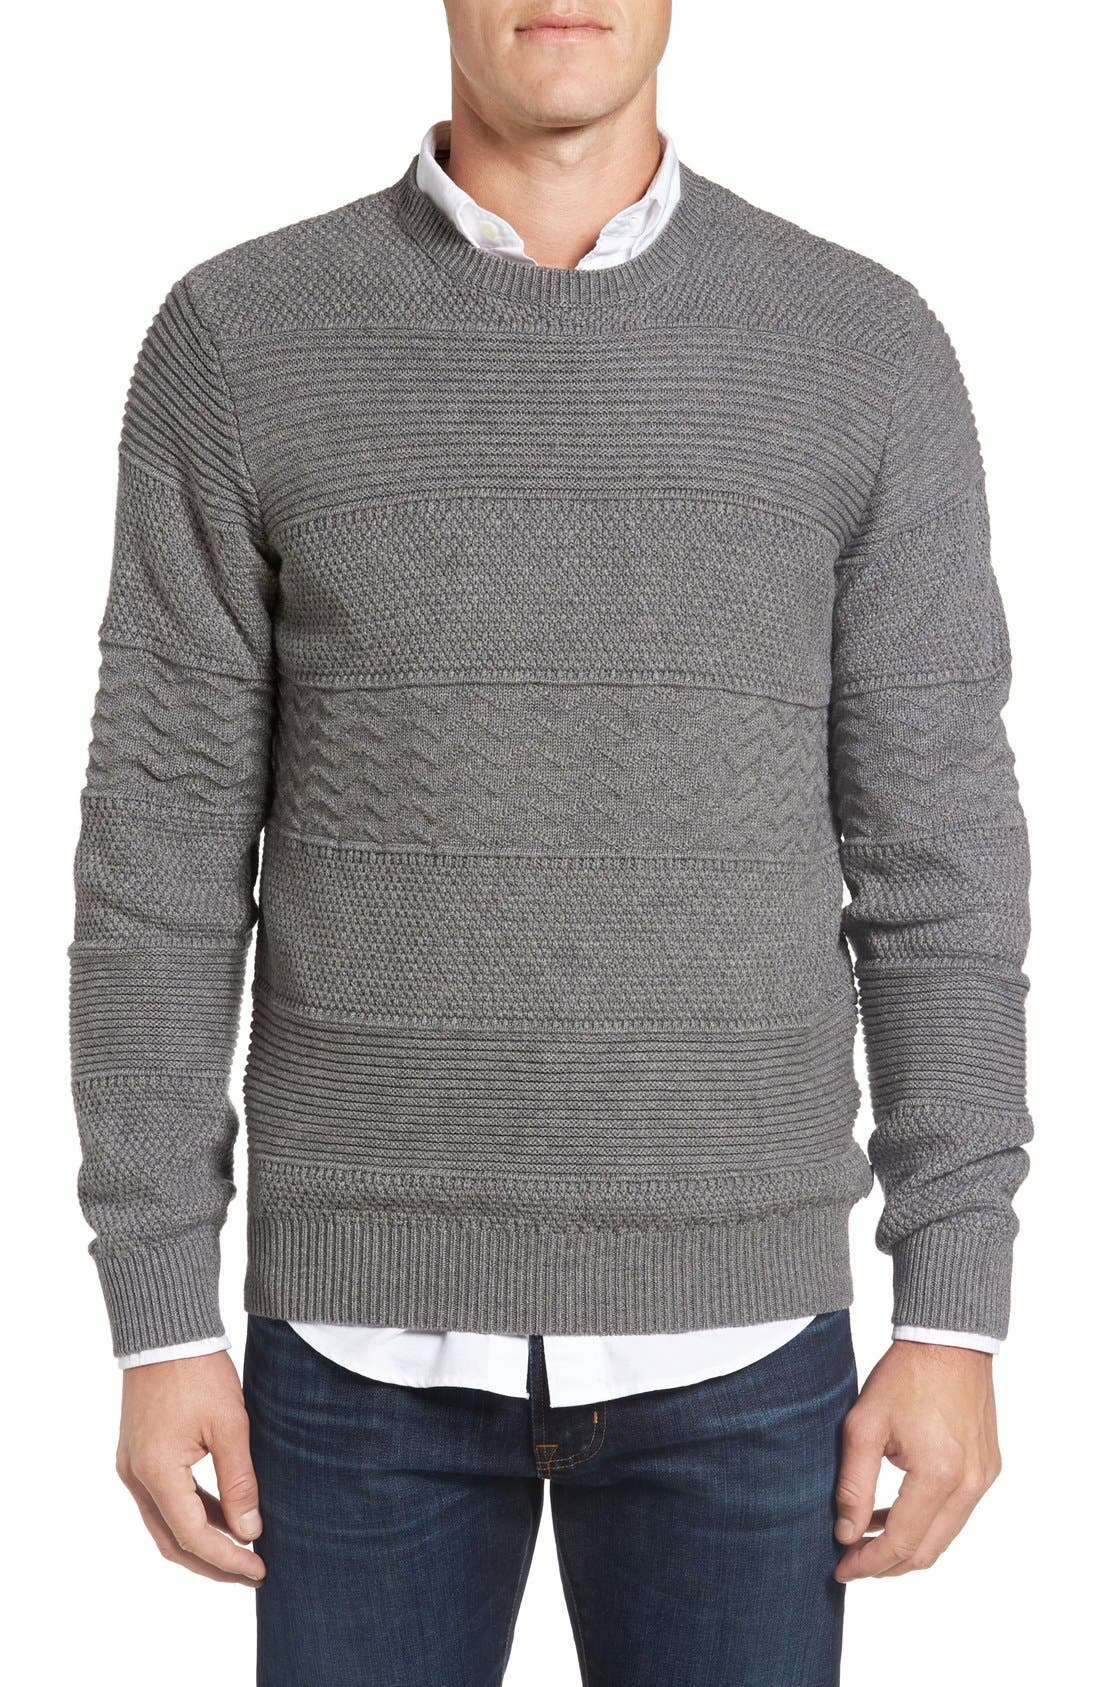 Structure Crewneck Sweater,                             Main thumbnail 1, color,                             Grey Melange